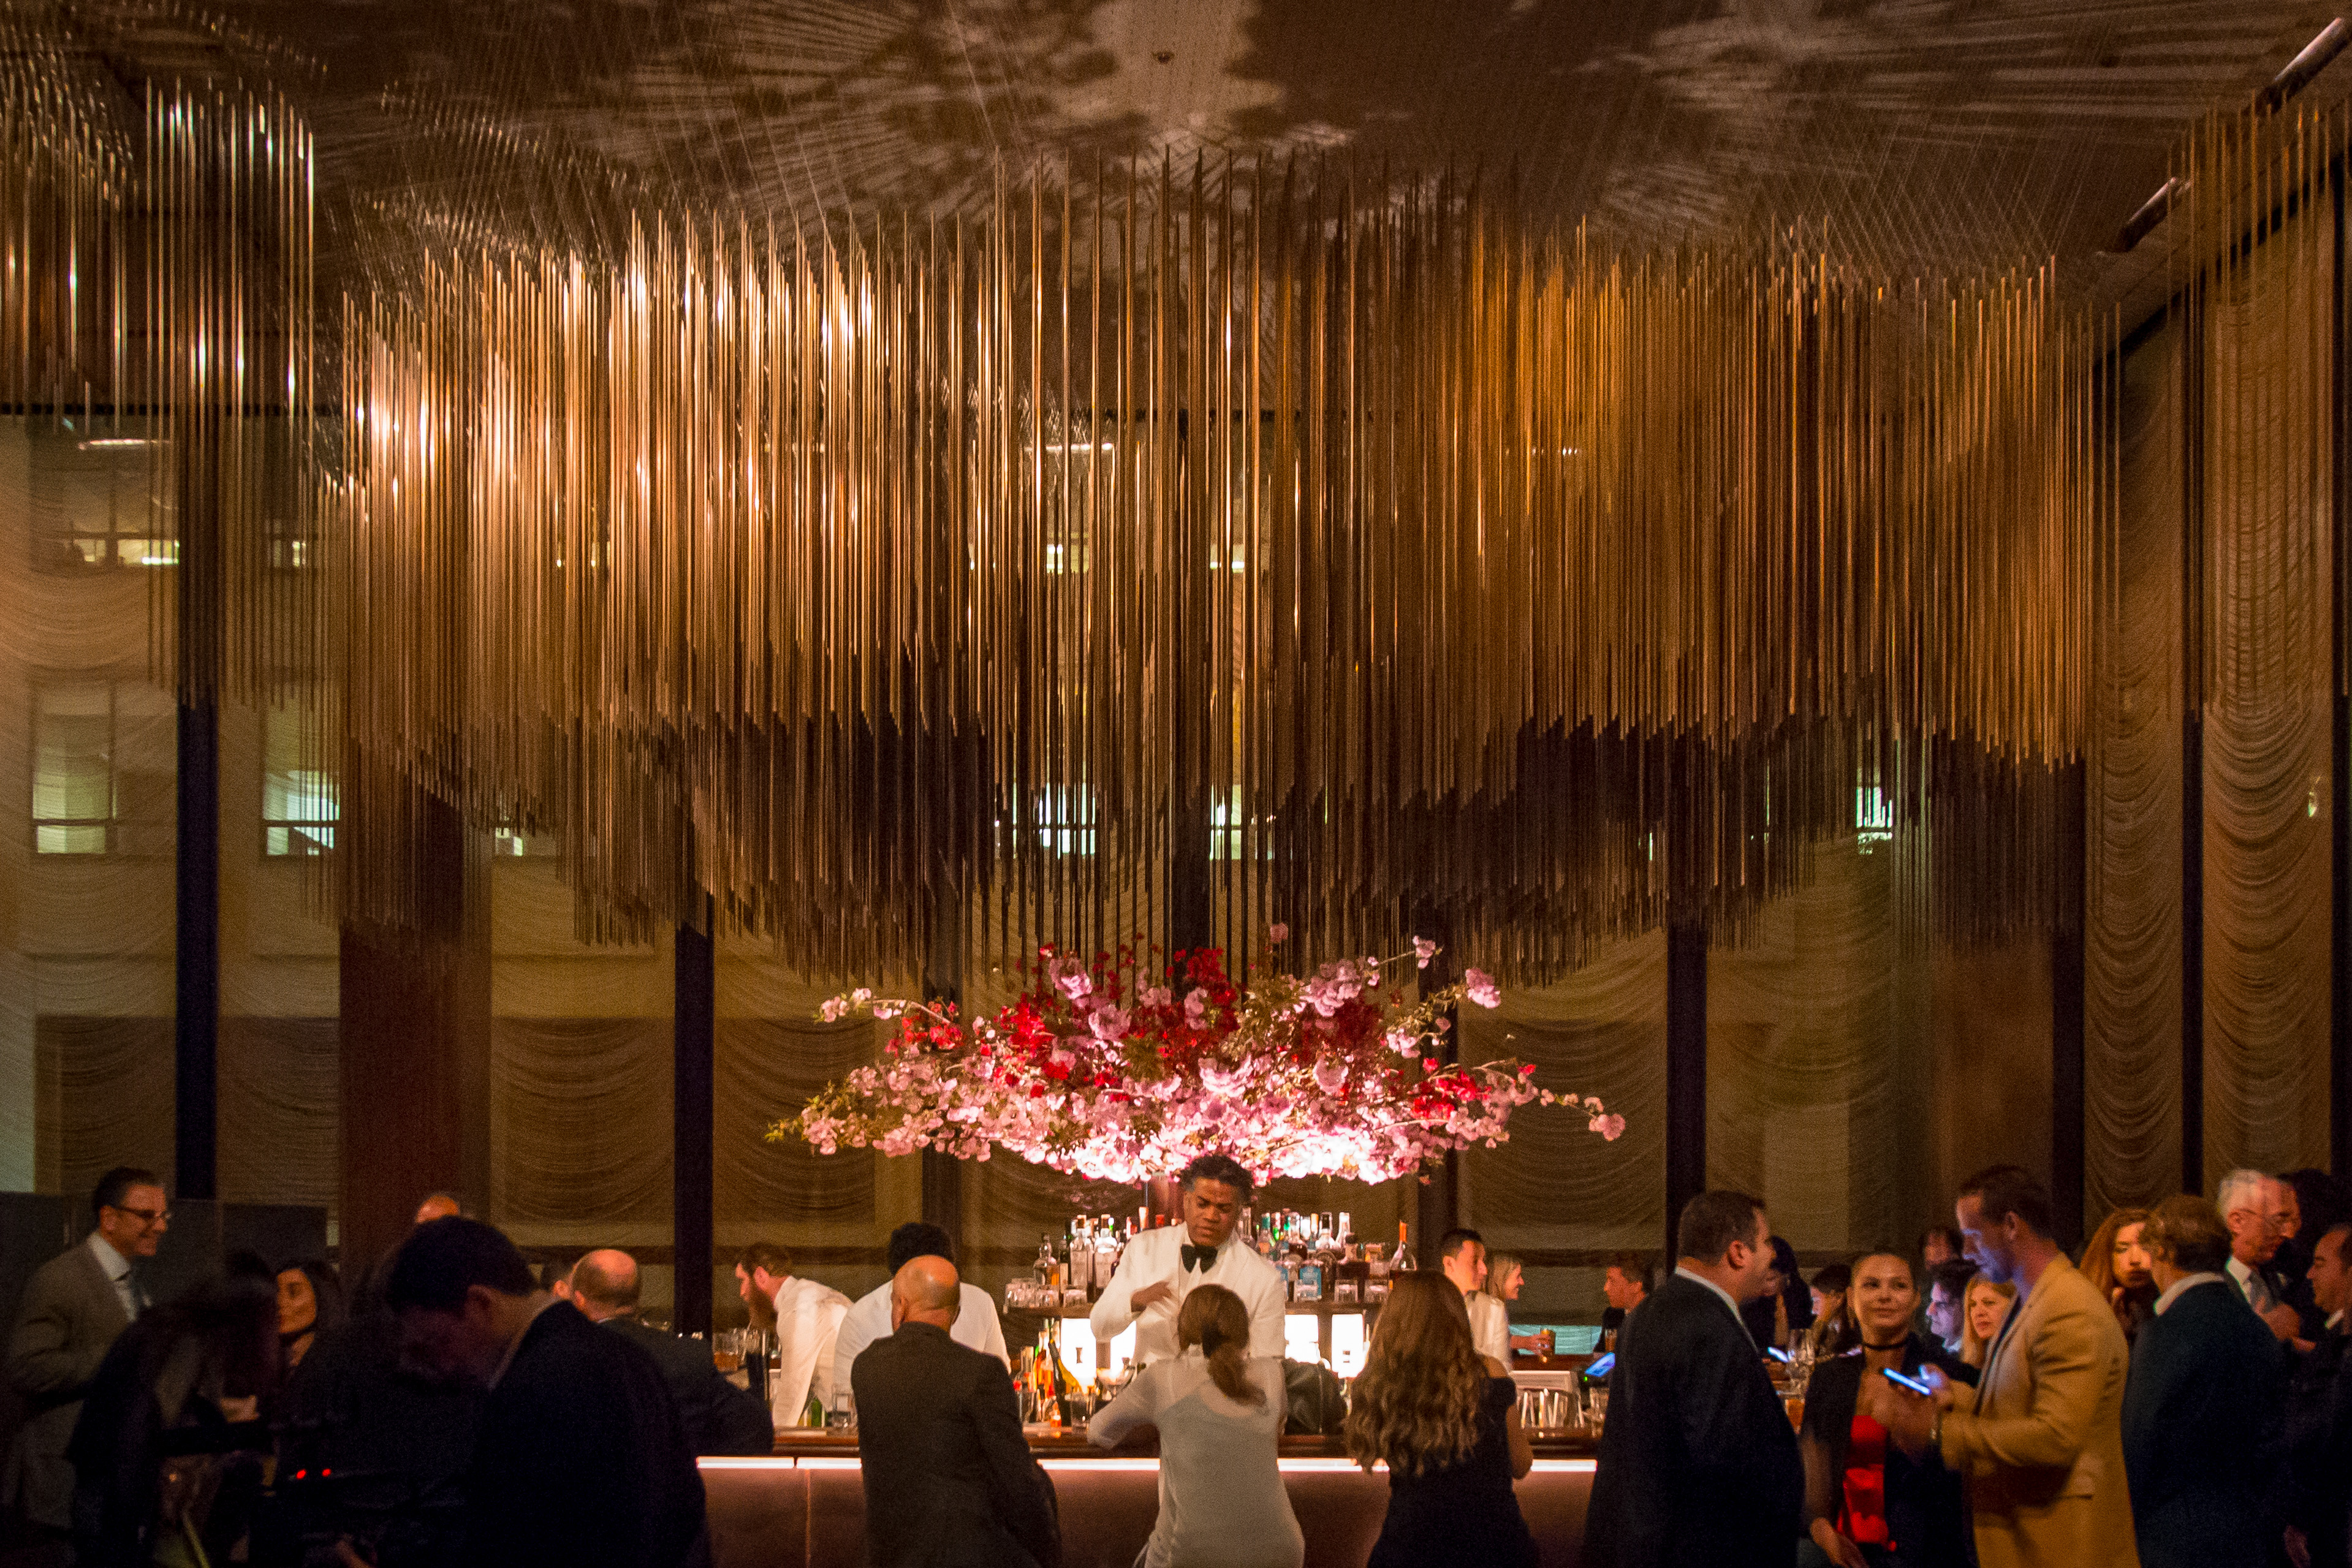 A restaurant bar filled with people. A dramatic chandelier hangs above the bar